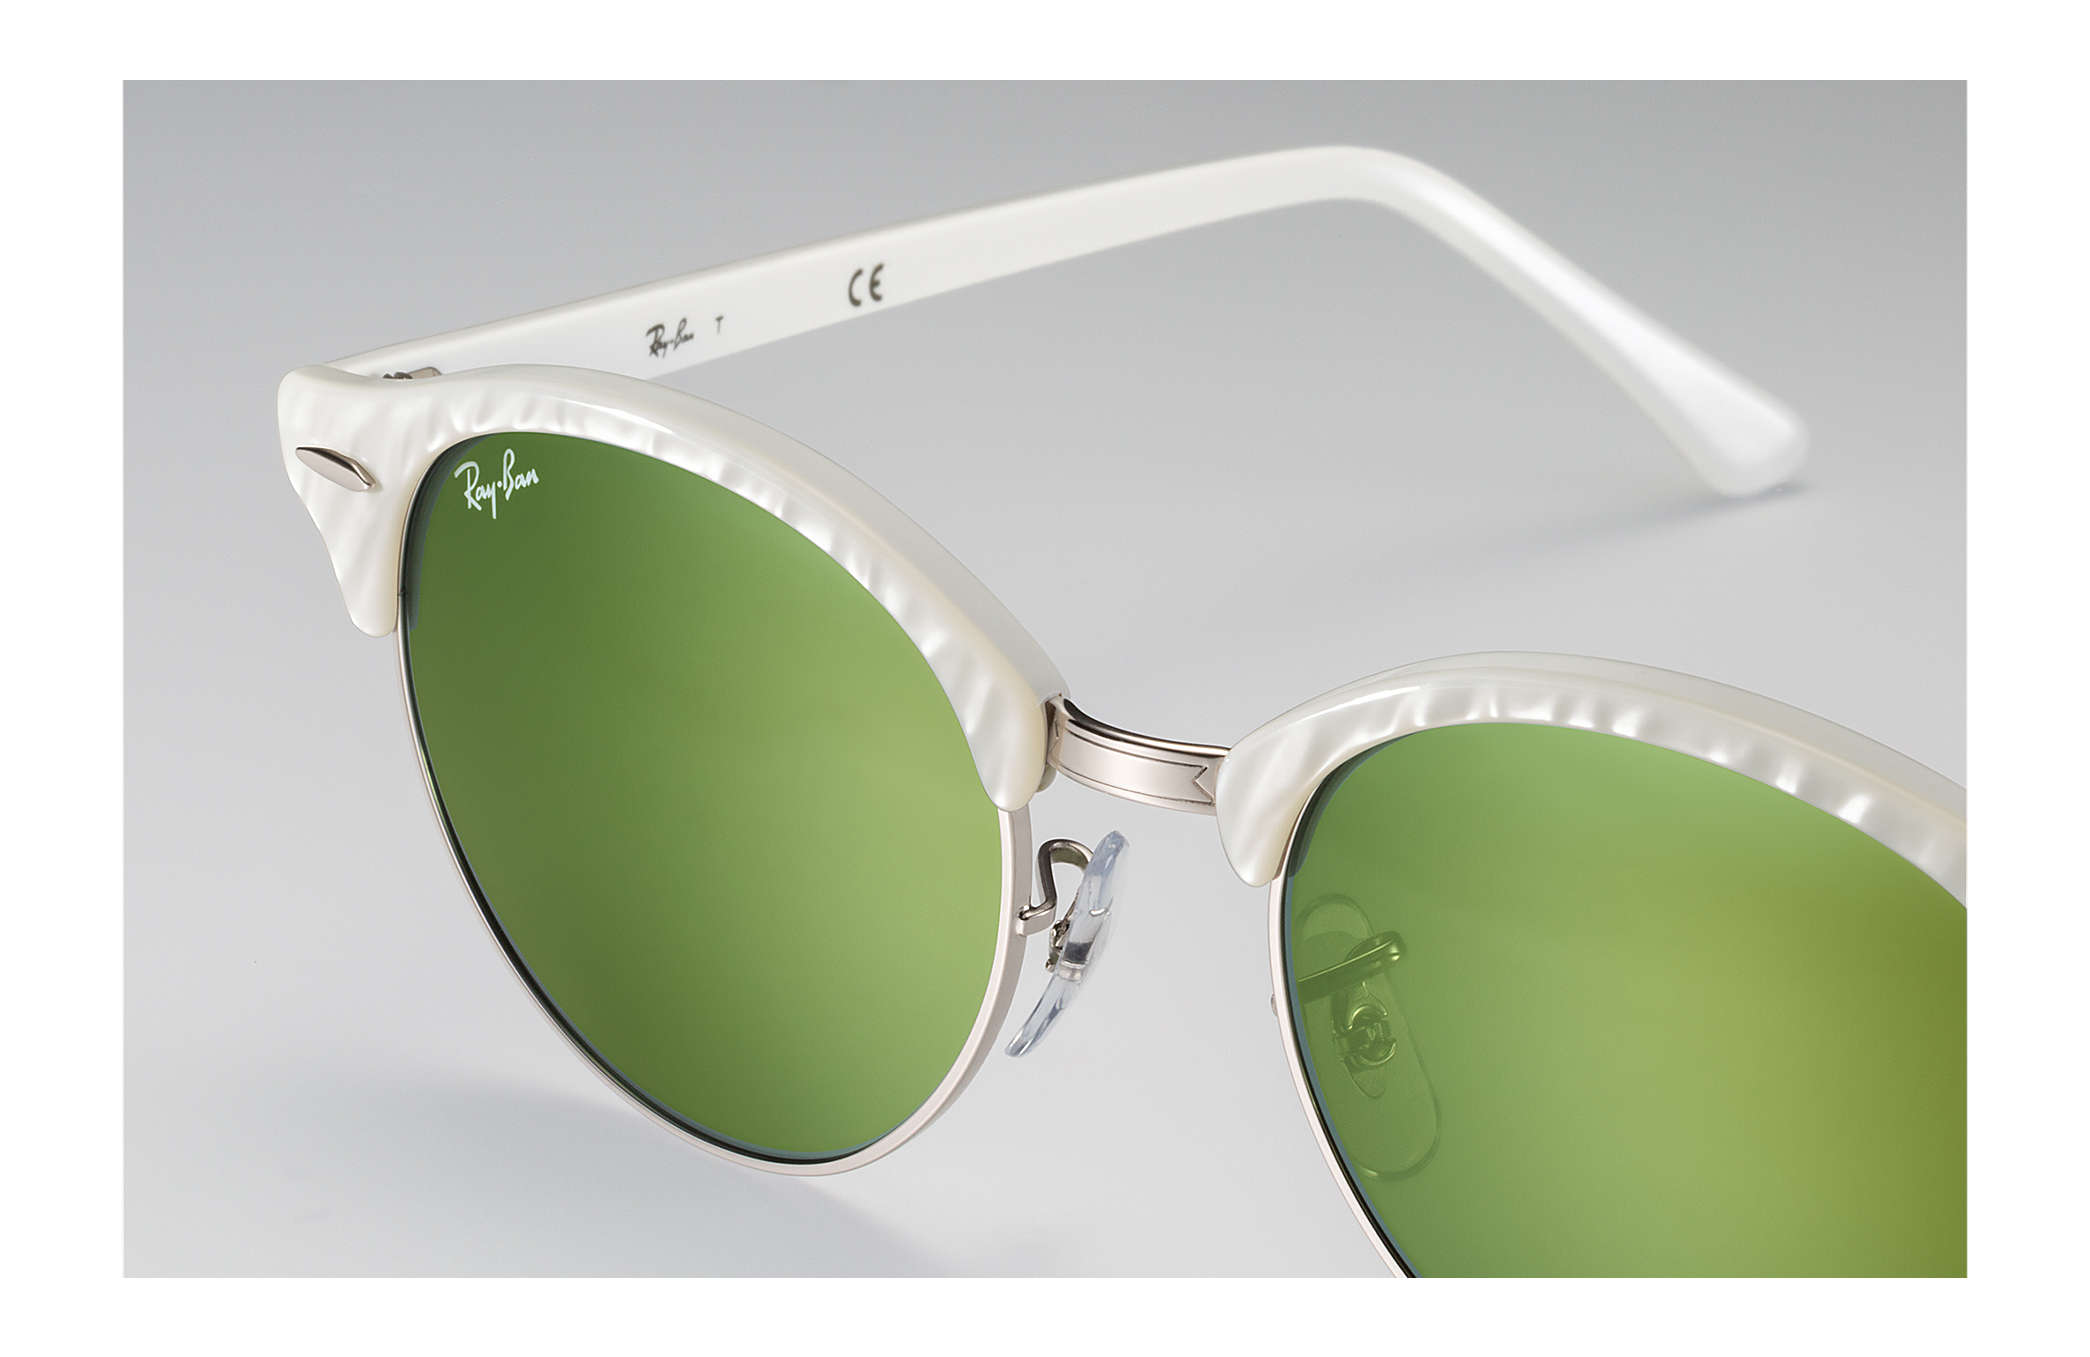 6420762c856d3 Ray-Ban Clubround Flash Lenses RB4246 Branco - Acetato - Lentes ...